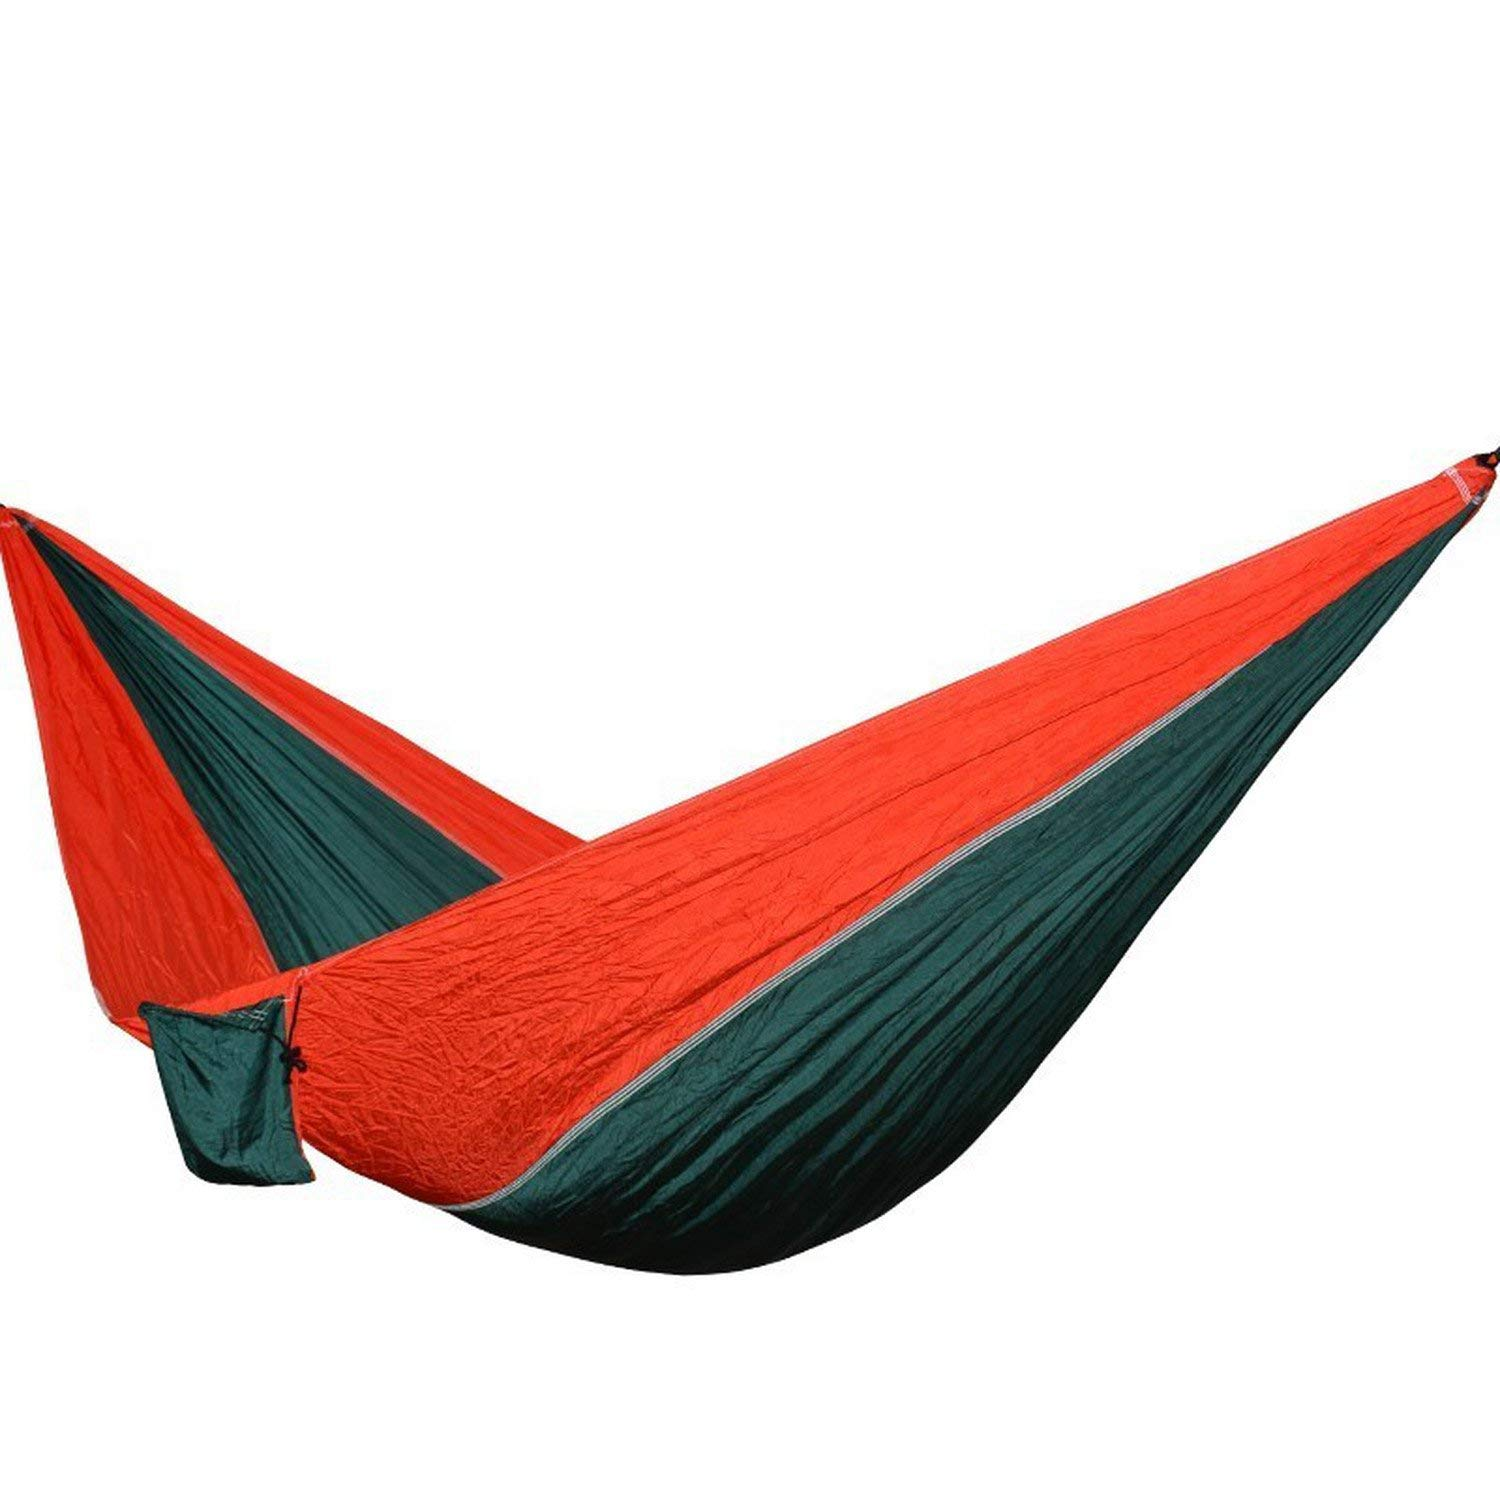 Mandaartins 24 Color 2 People Portable Parachute Hammock Camping Survival Garden Flyknit Hunting Leisure Hamac Travel Double Person Hamak,green red